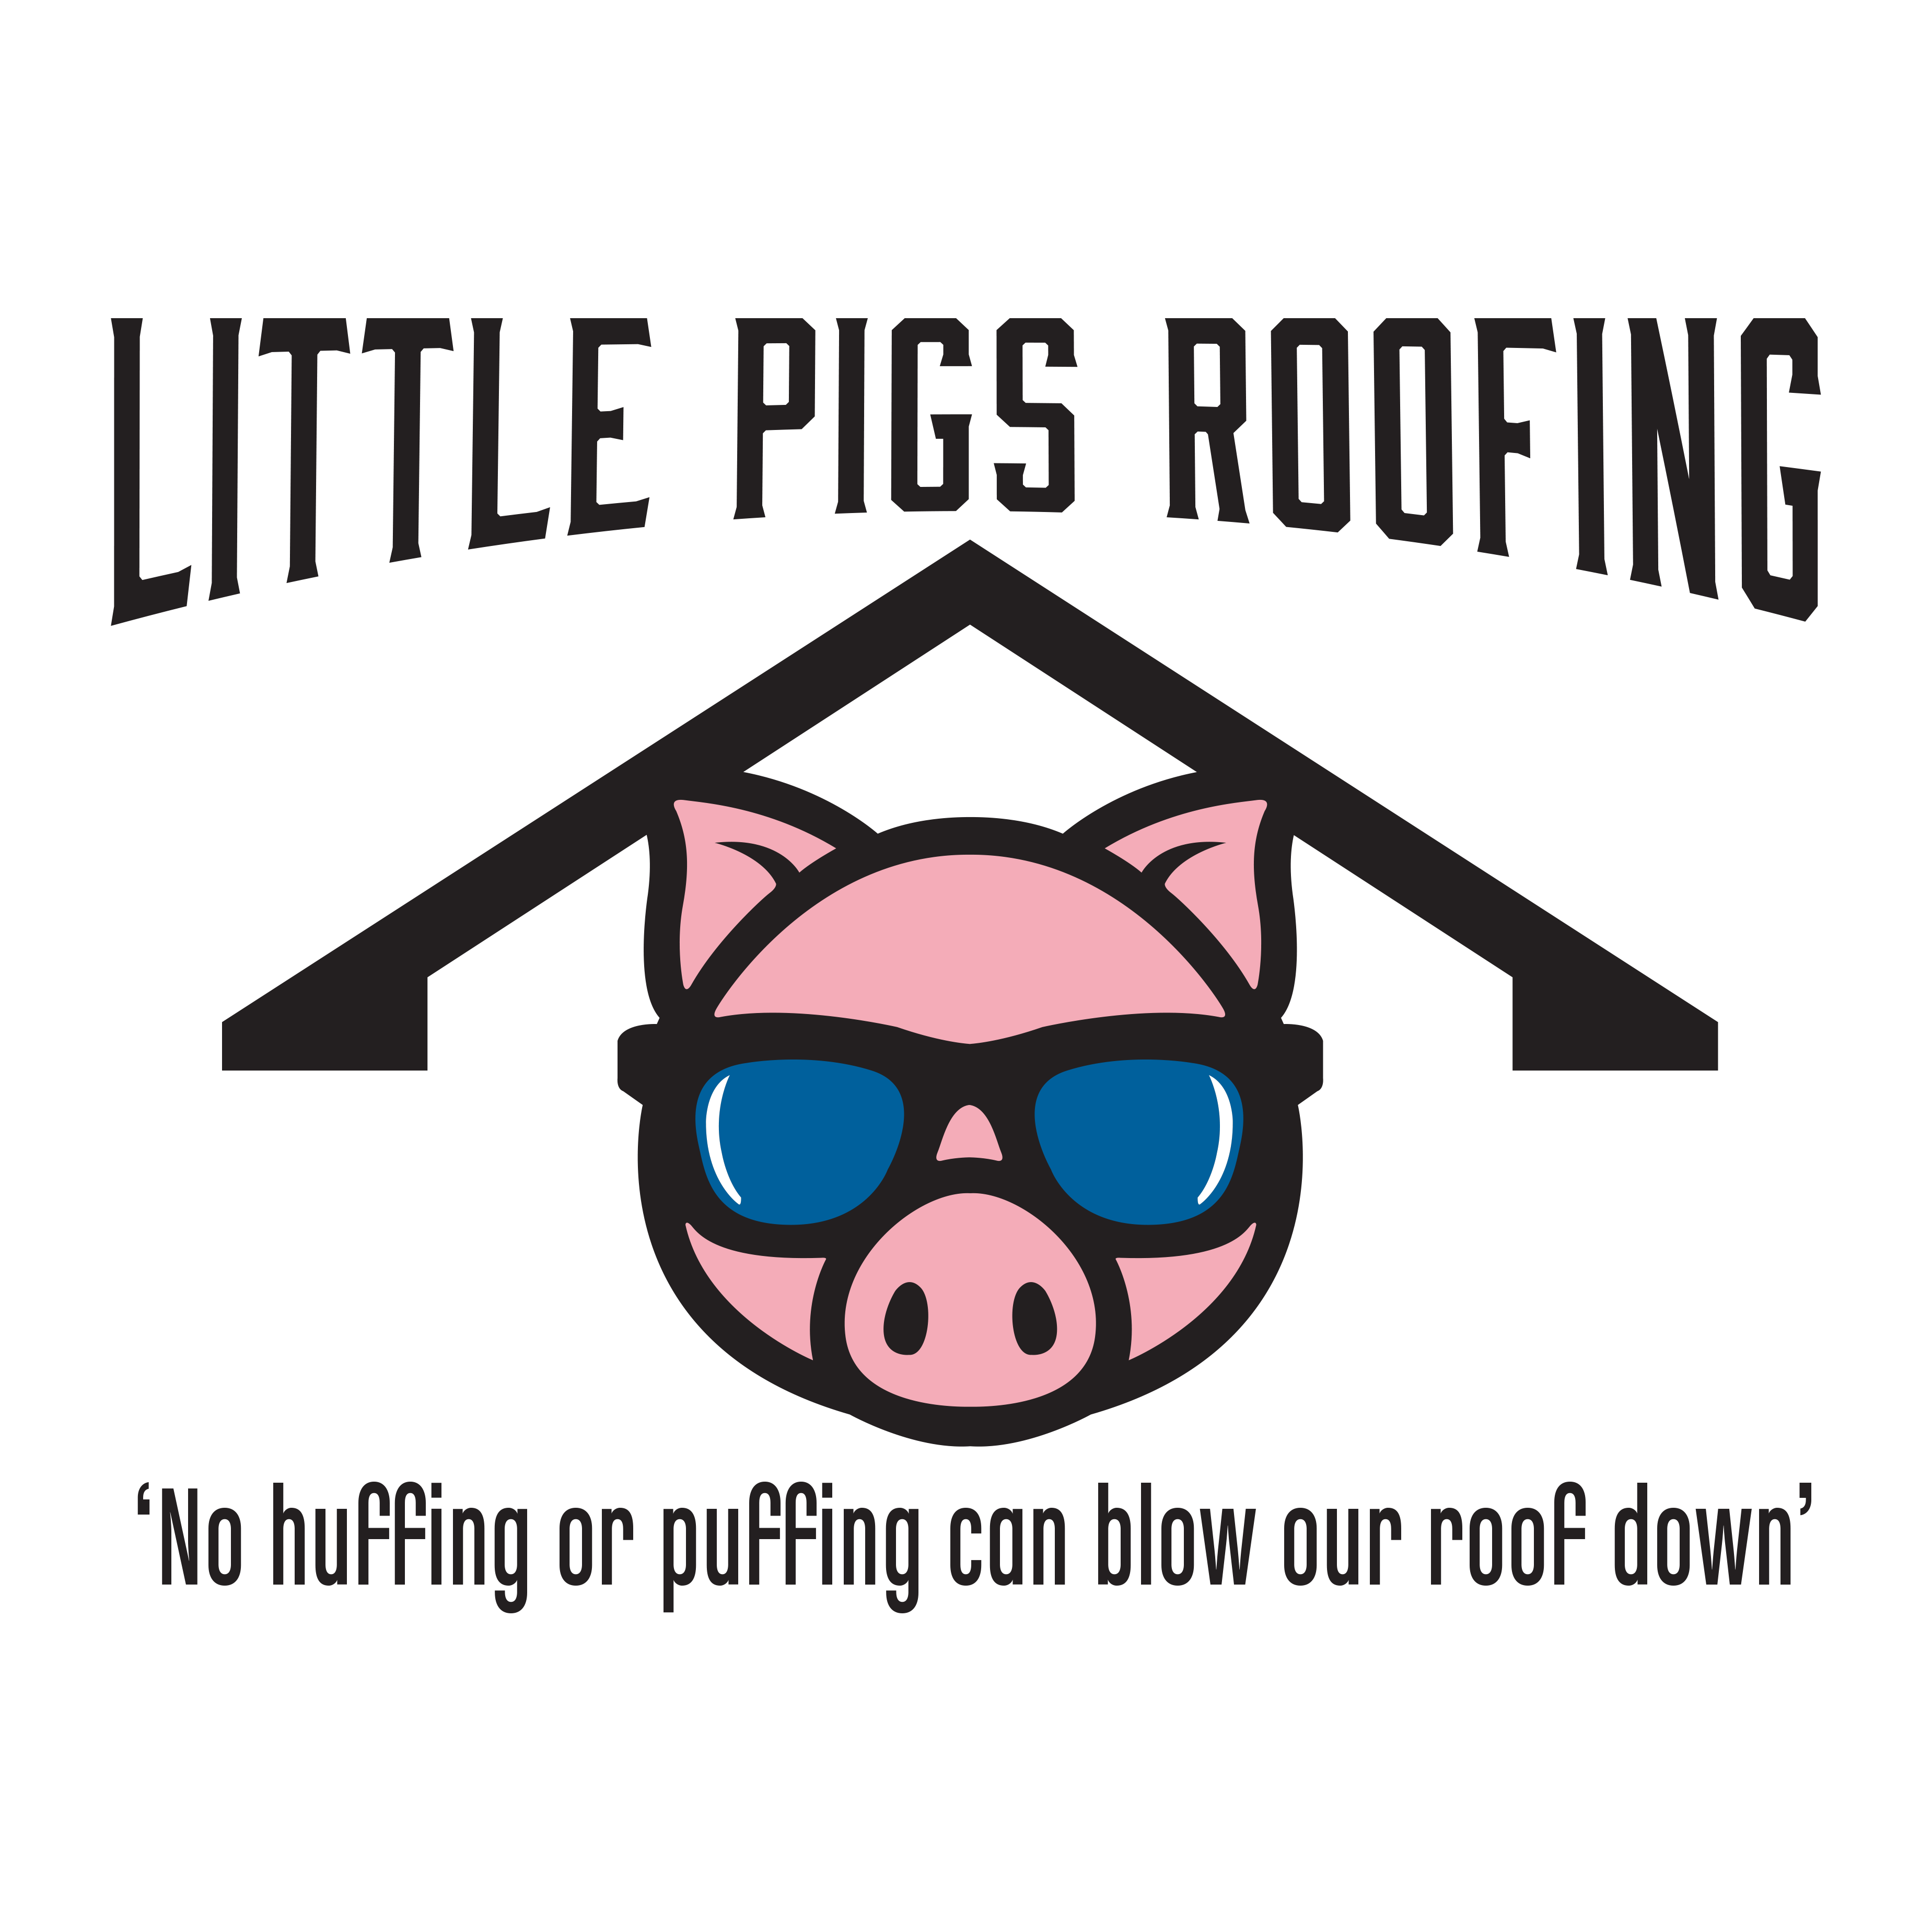 Little Pigs Roofing